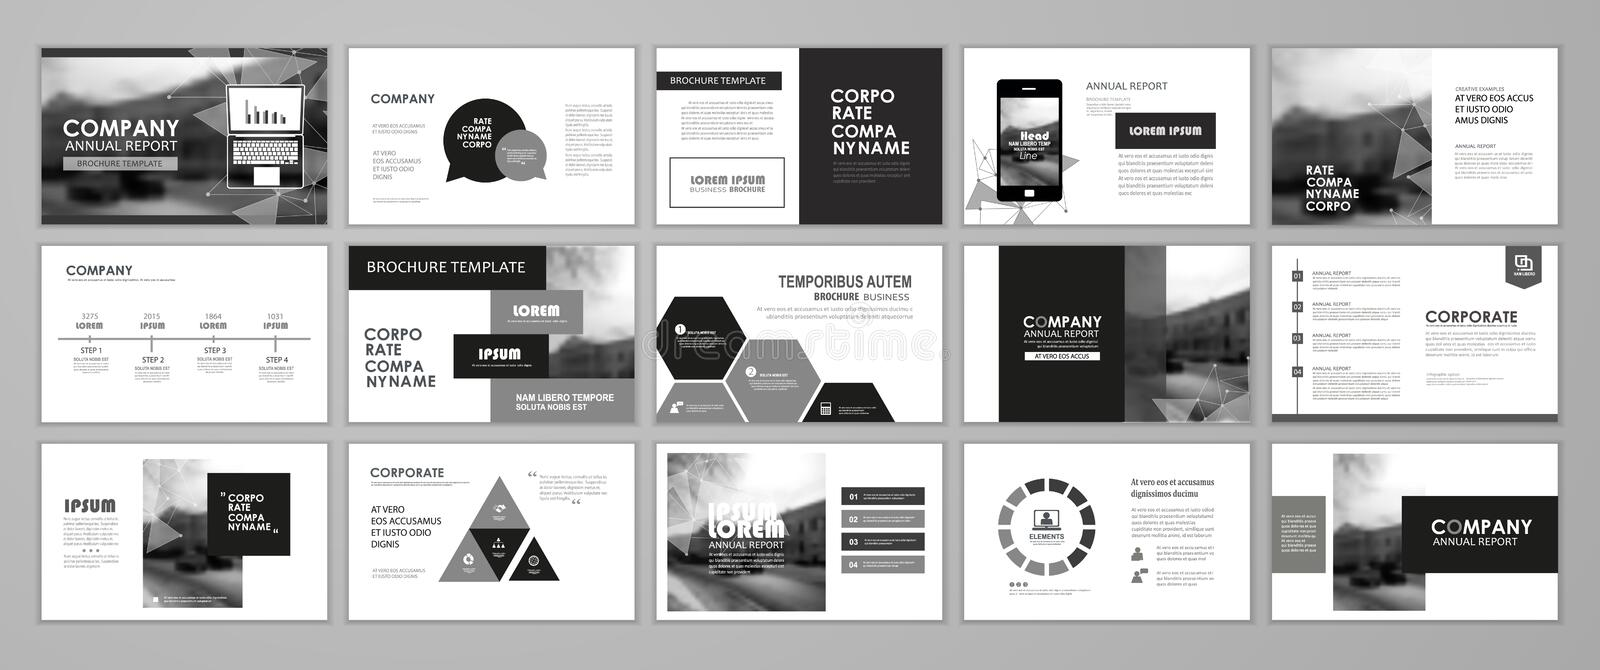 Black and white abstract presentation slide. Templates. Infographic elements template set for web, print, annual report brochure, business flyer leaflet vector illustration